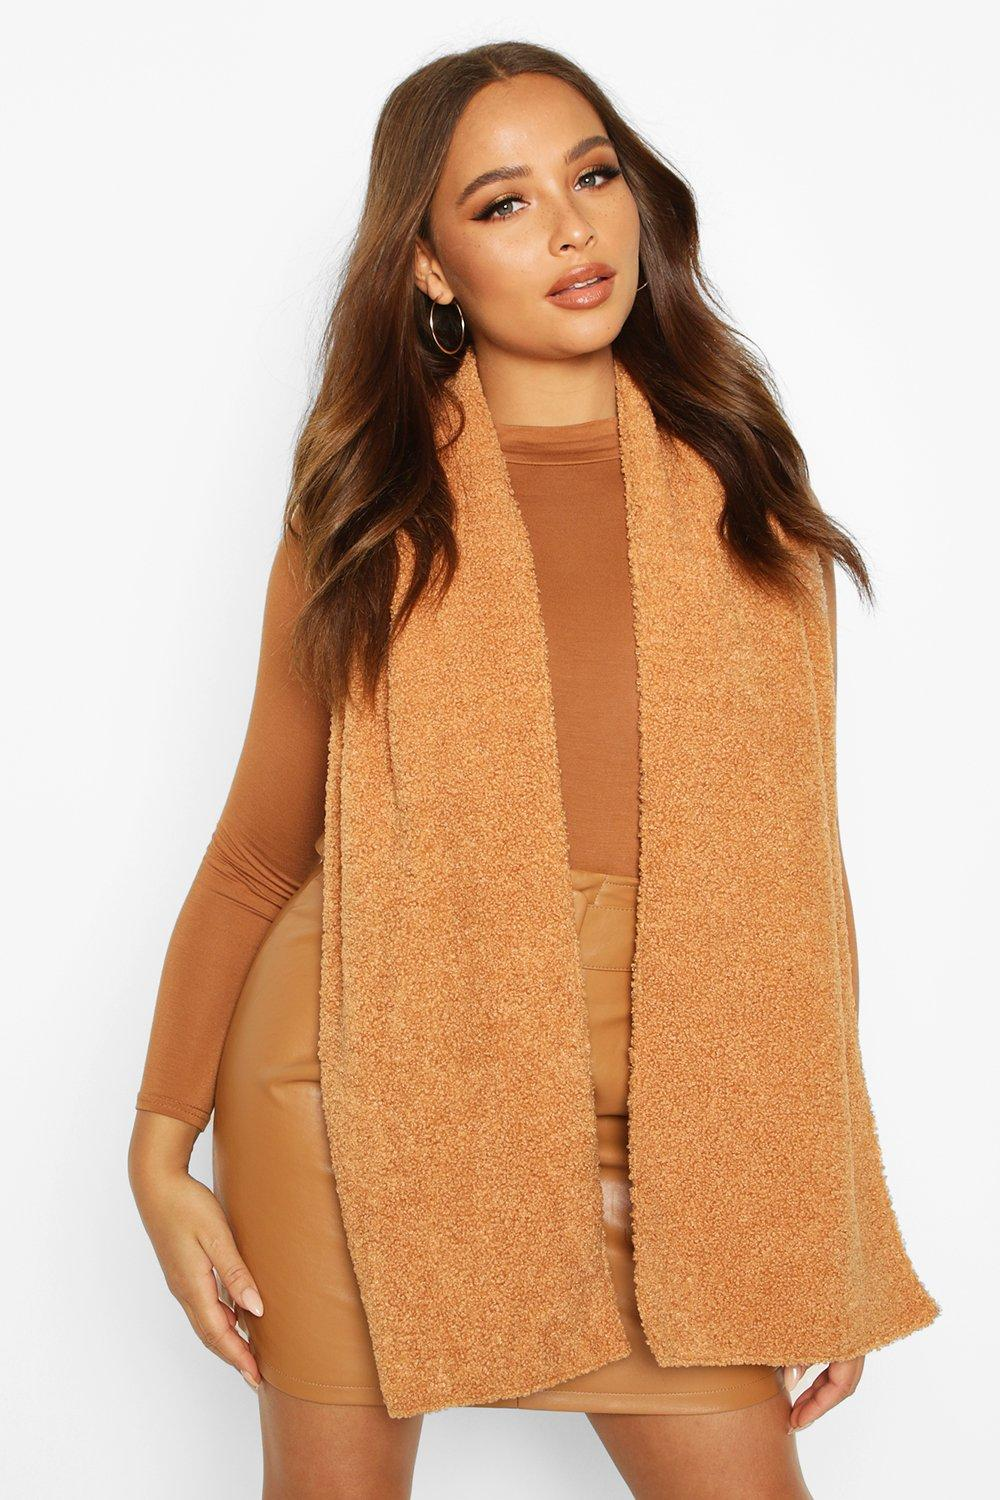 boohoo Womens Teddy Borg Scarf - Brown - One Size, Brown